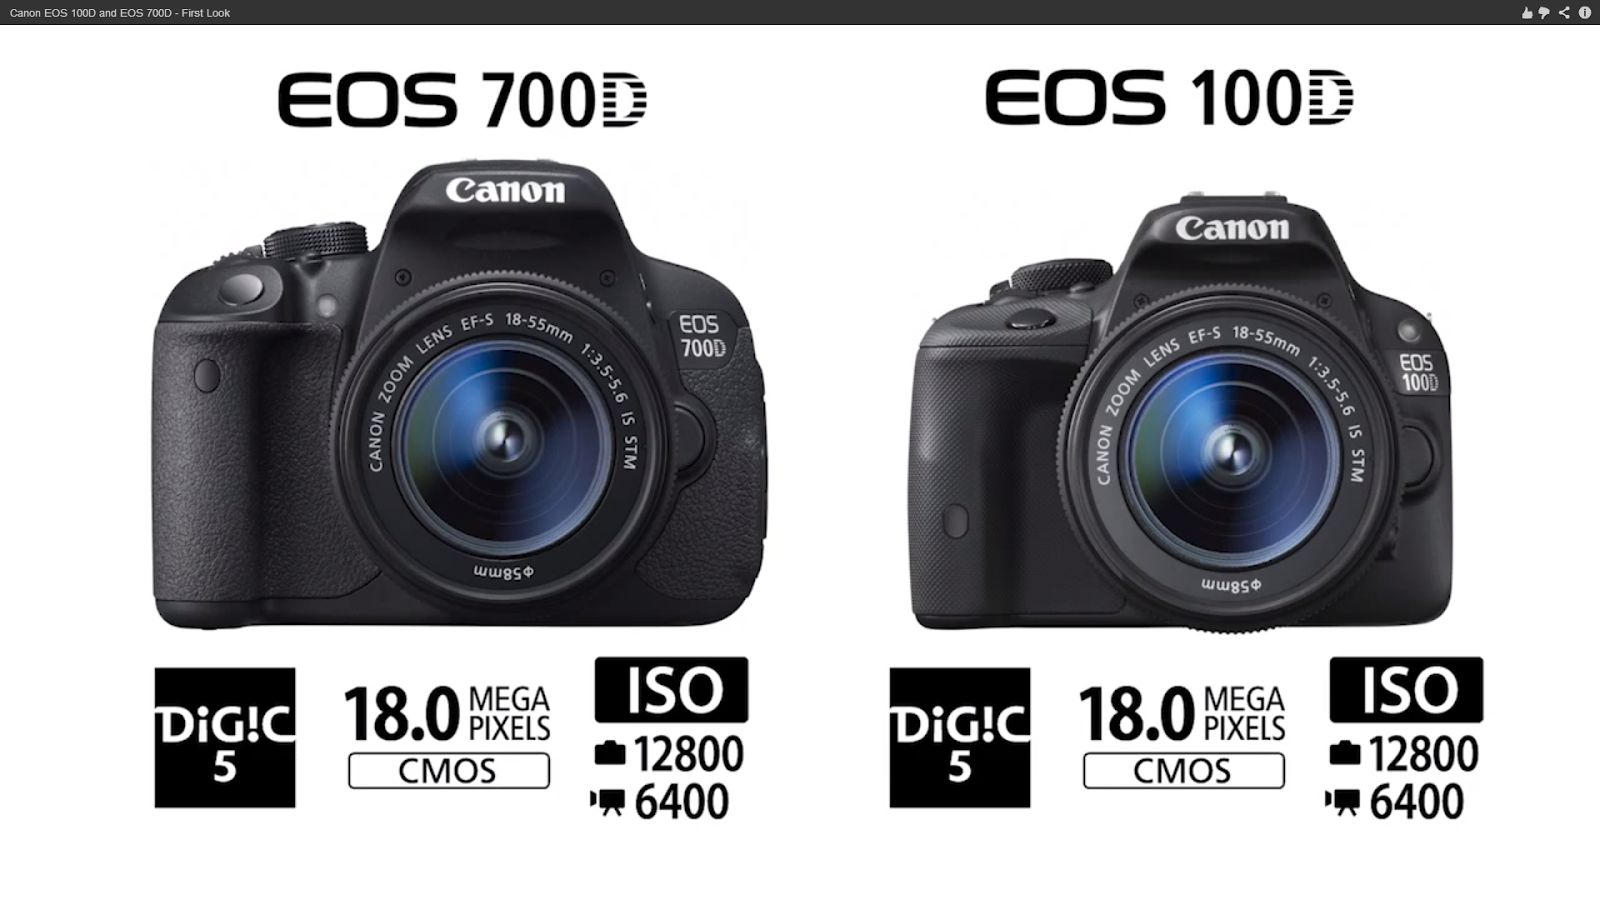 Canon Announces 700d 100d Dallas Goh Photography Eos Dslr Camera Amazingly The Cheaper Gets A Really Awesome Live View Af System That Covers 80 Of Frame While Only Miserable 30